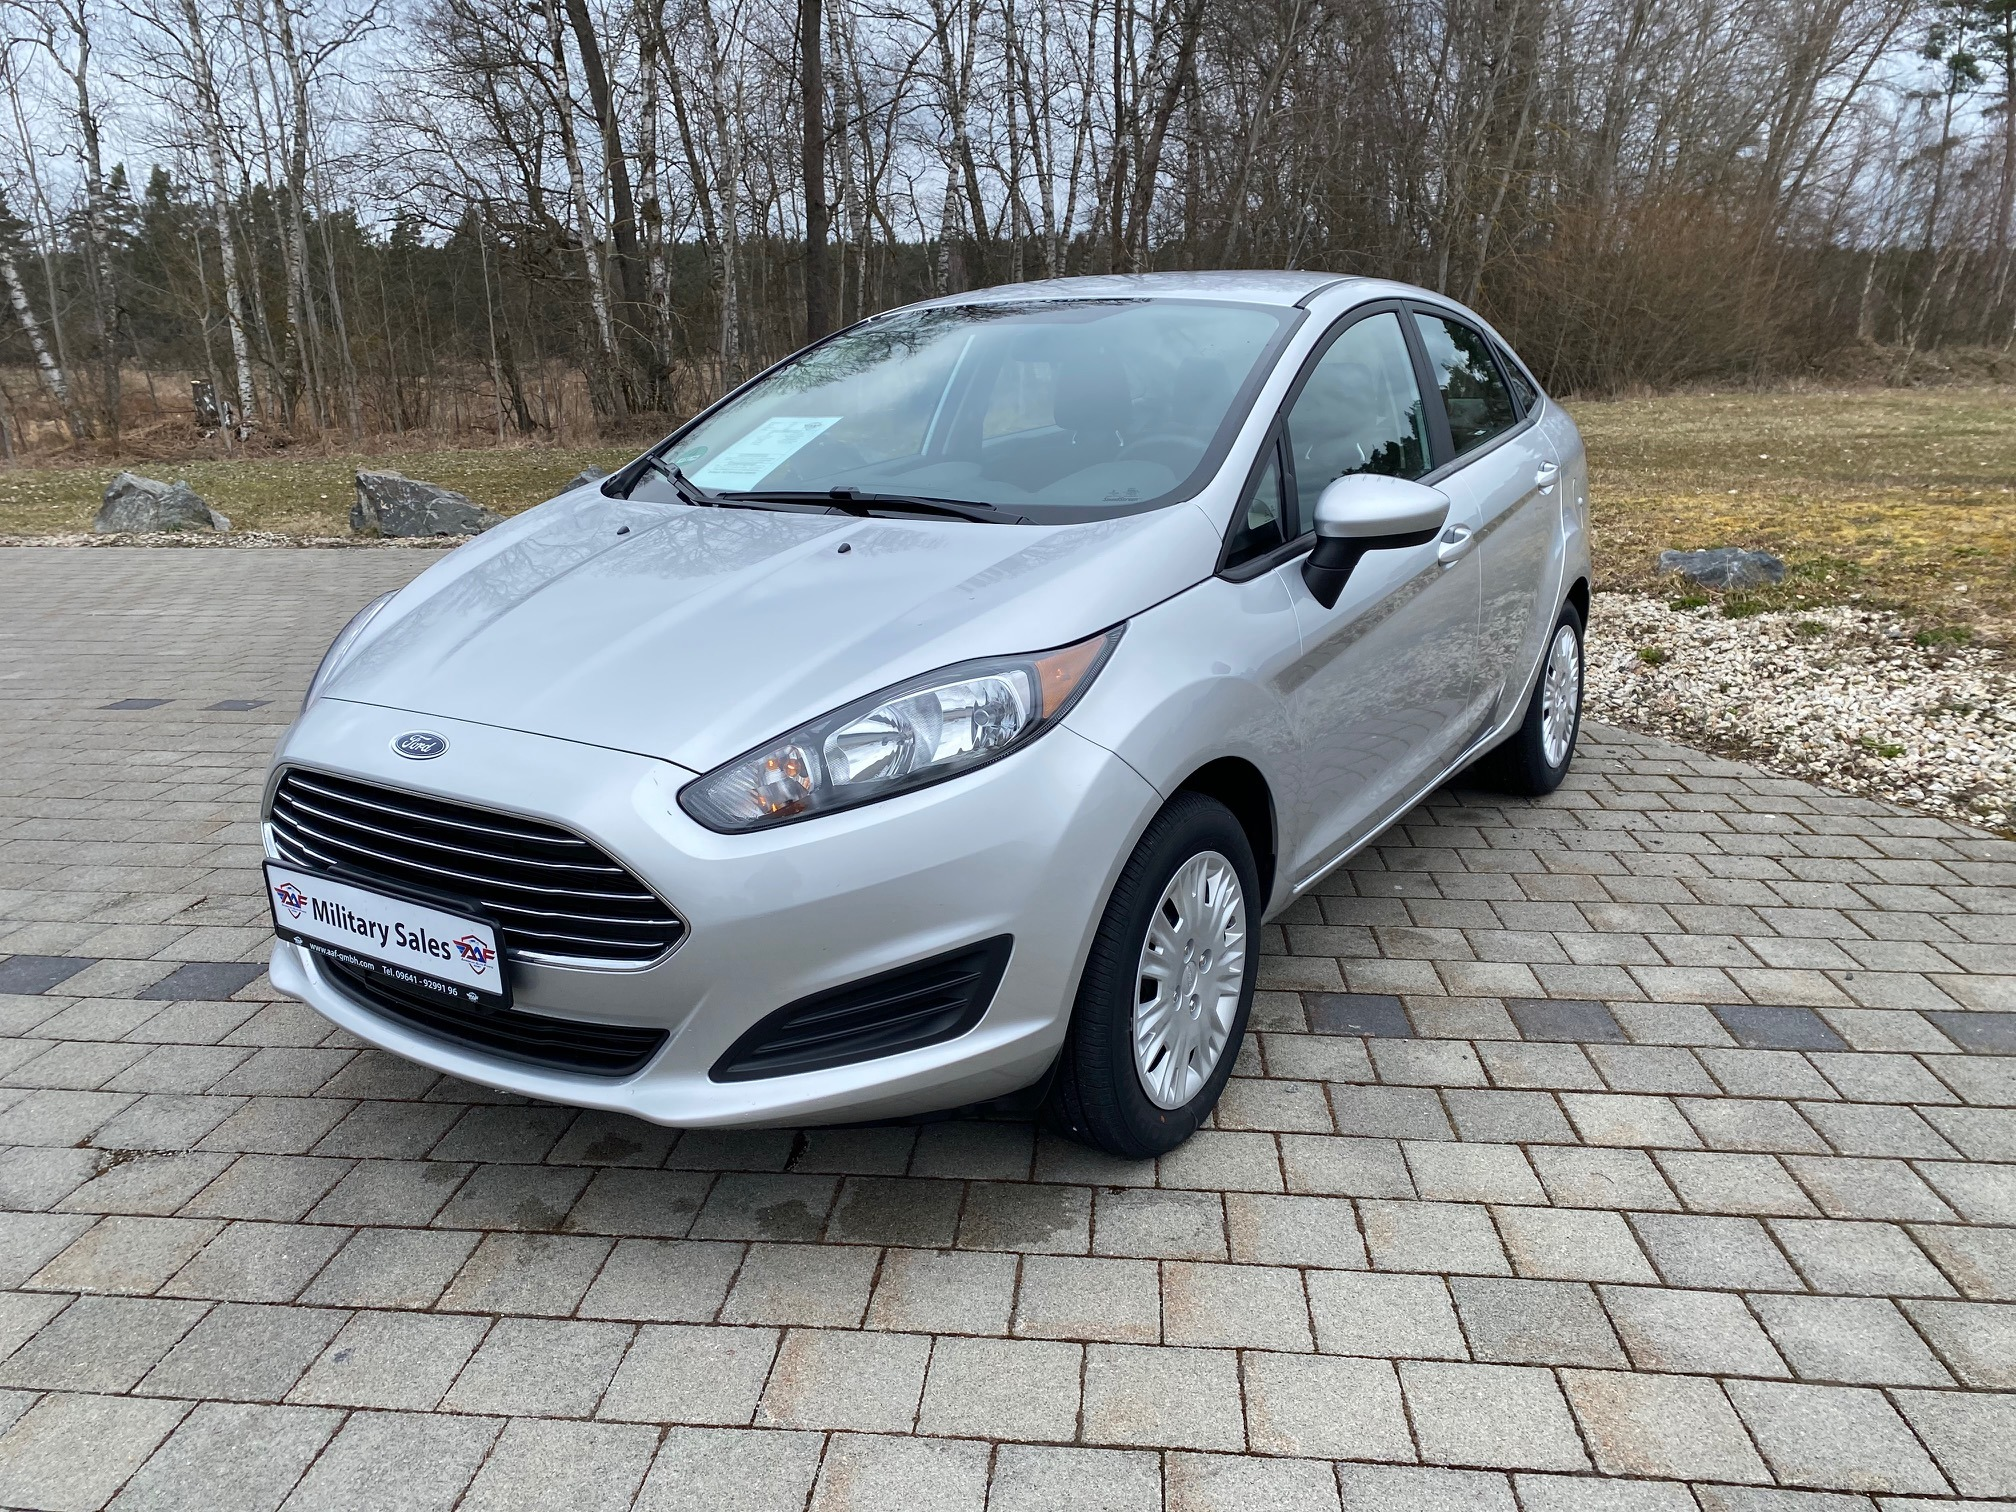 2019 Ford Fiesta S</br>as low as </br>$99 per paycheck